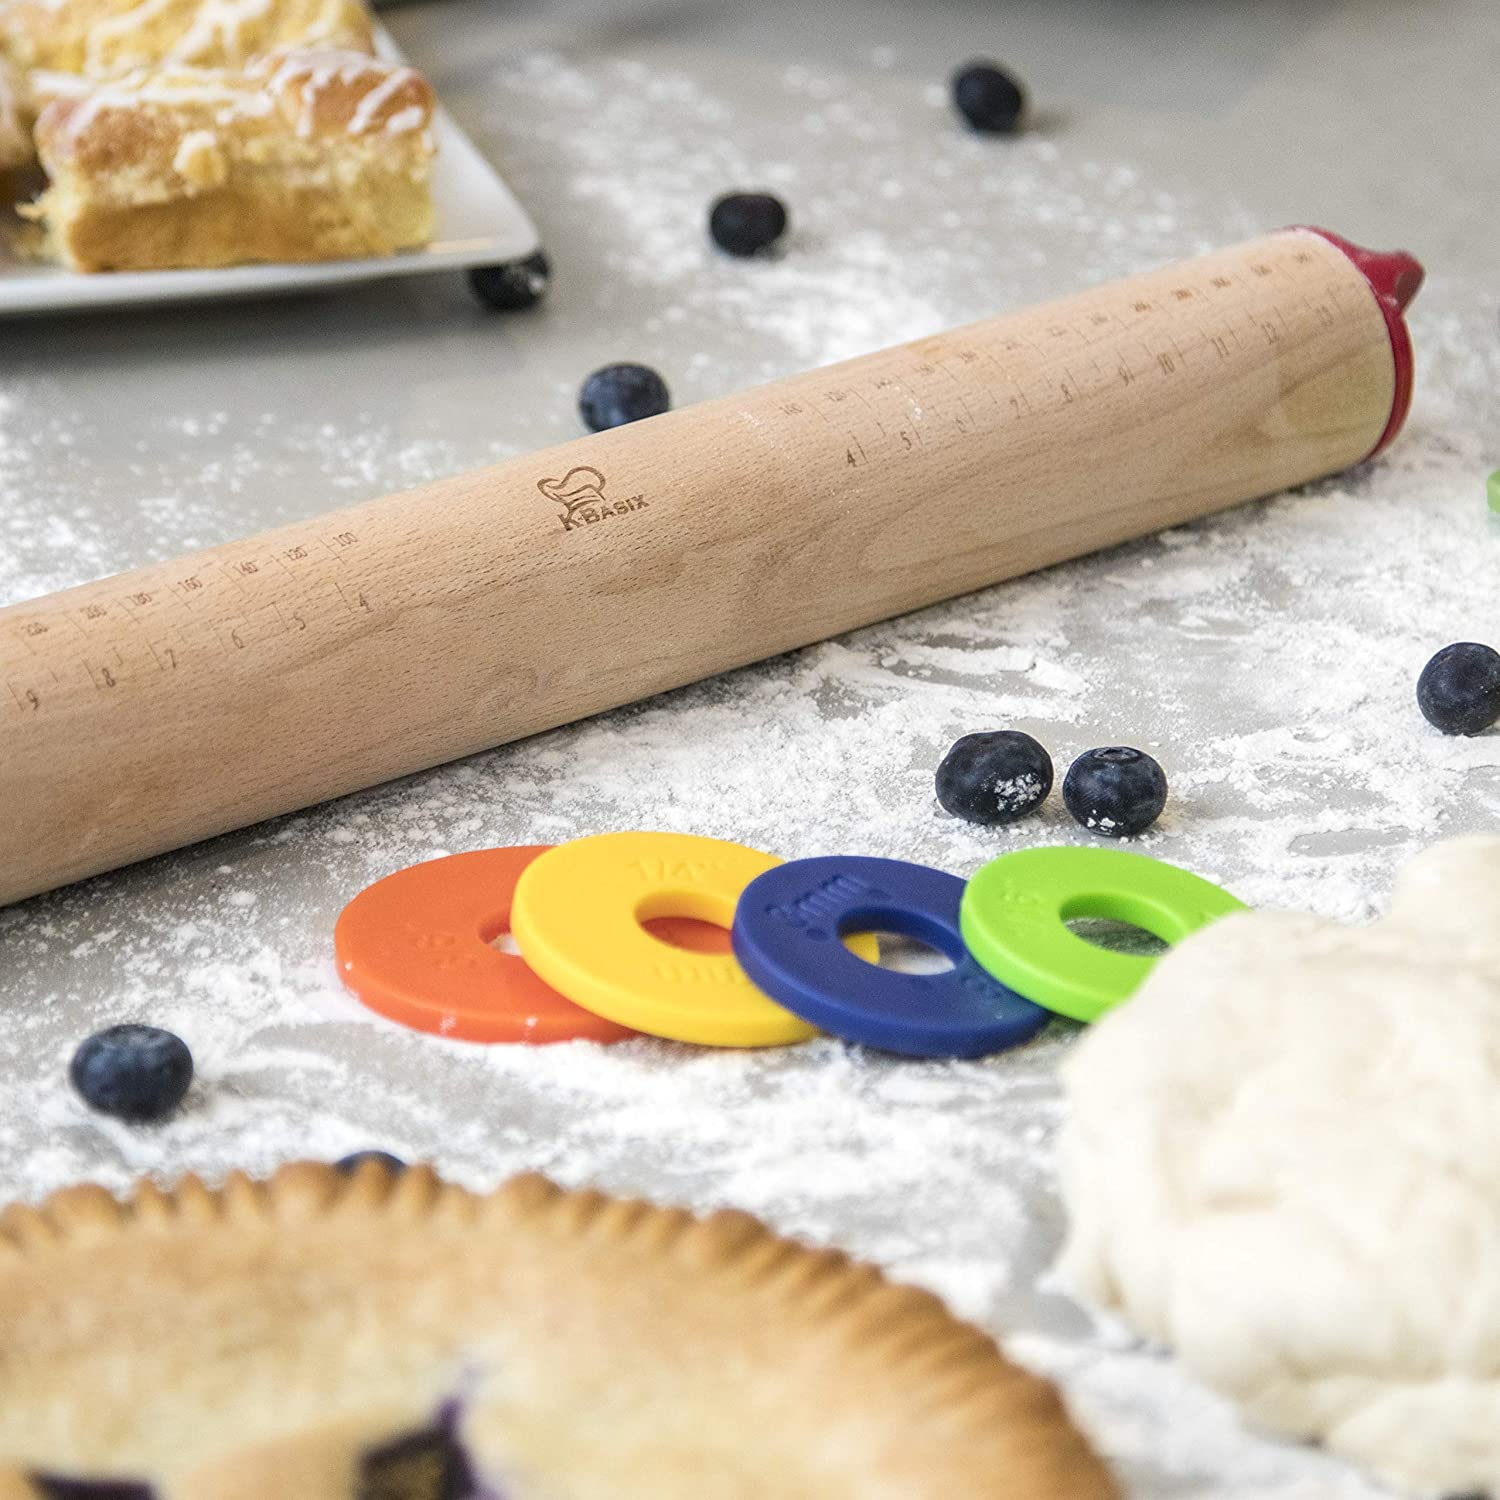 Kitchen Basix Adjustable Rolling Pin Multicolored Removable Rings Beech Wood Classic Baking Dough Pizza Pie Cookies